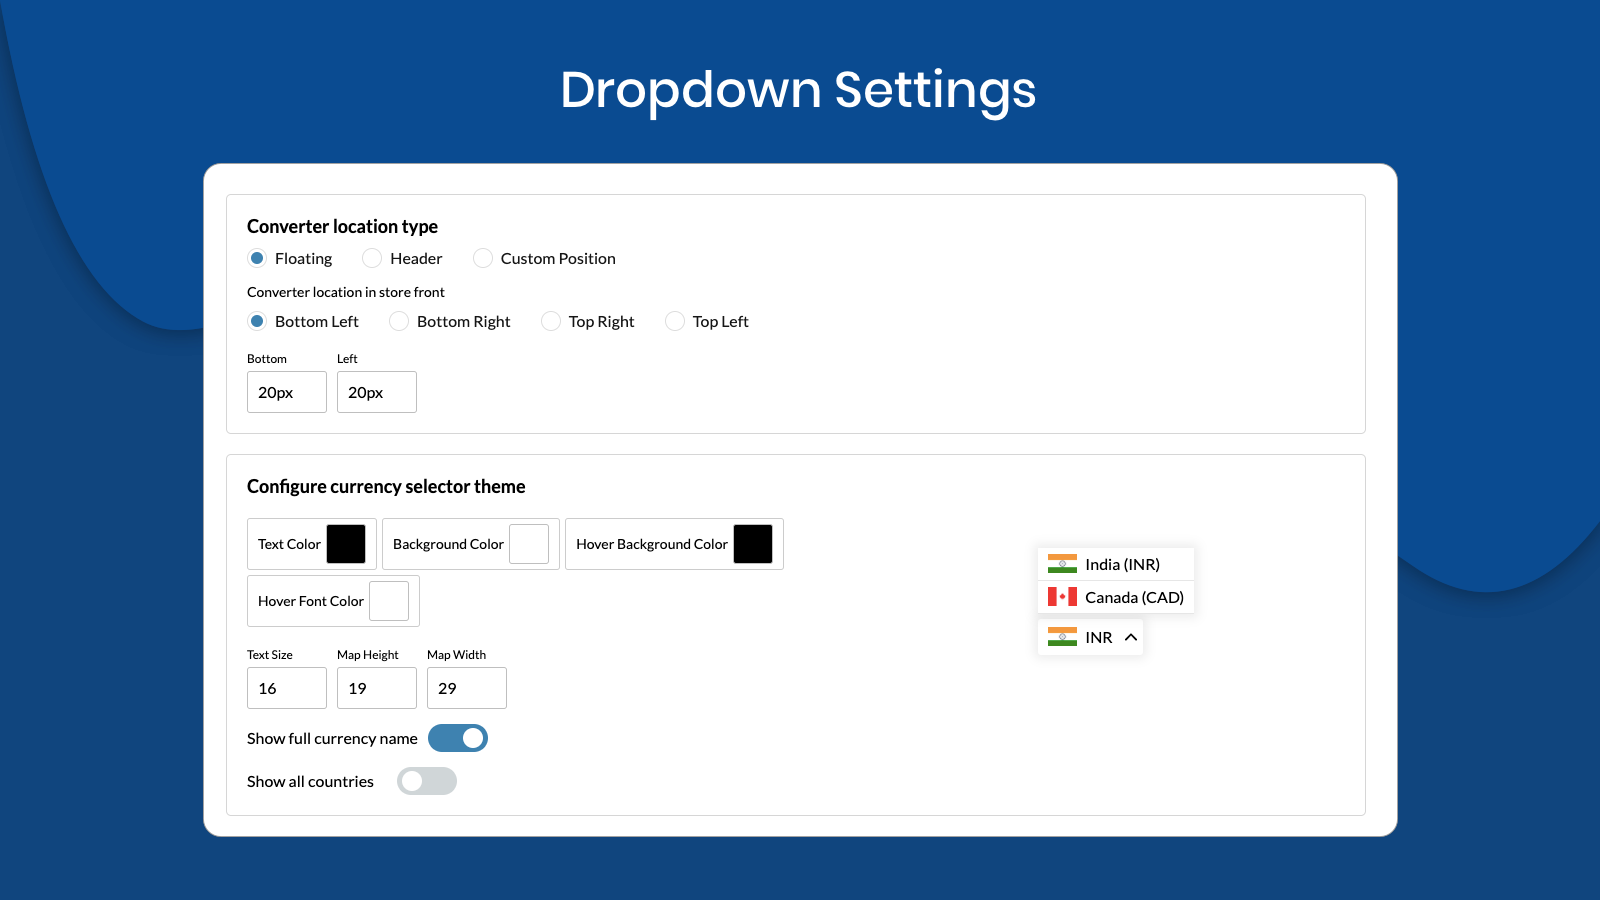 Dropdown settings of Currency Converter